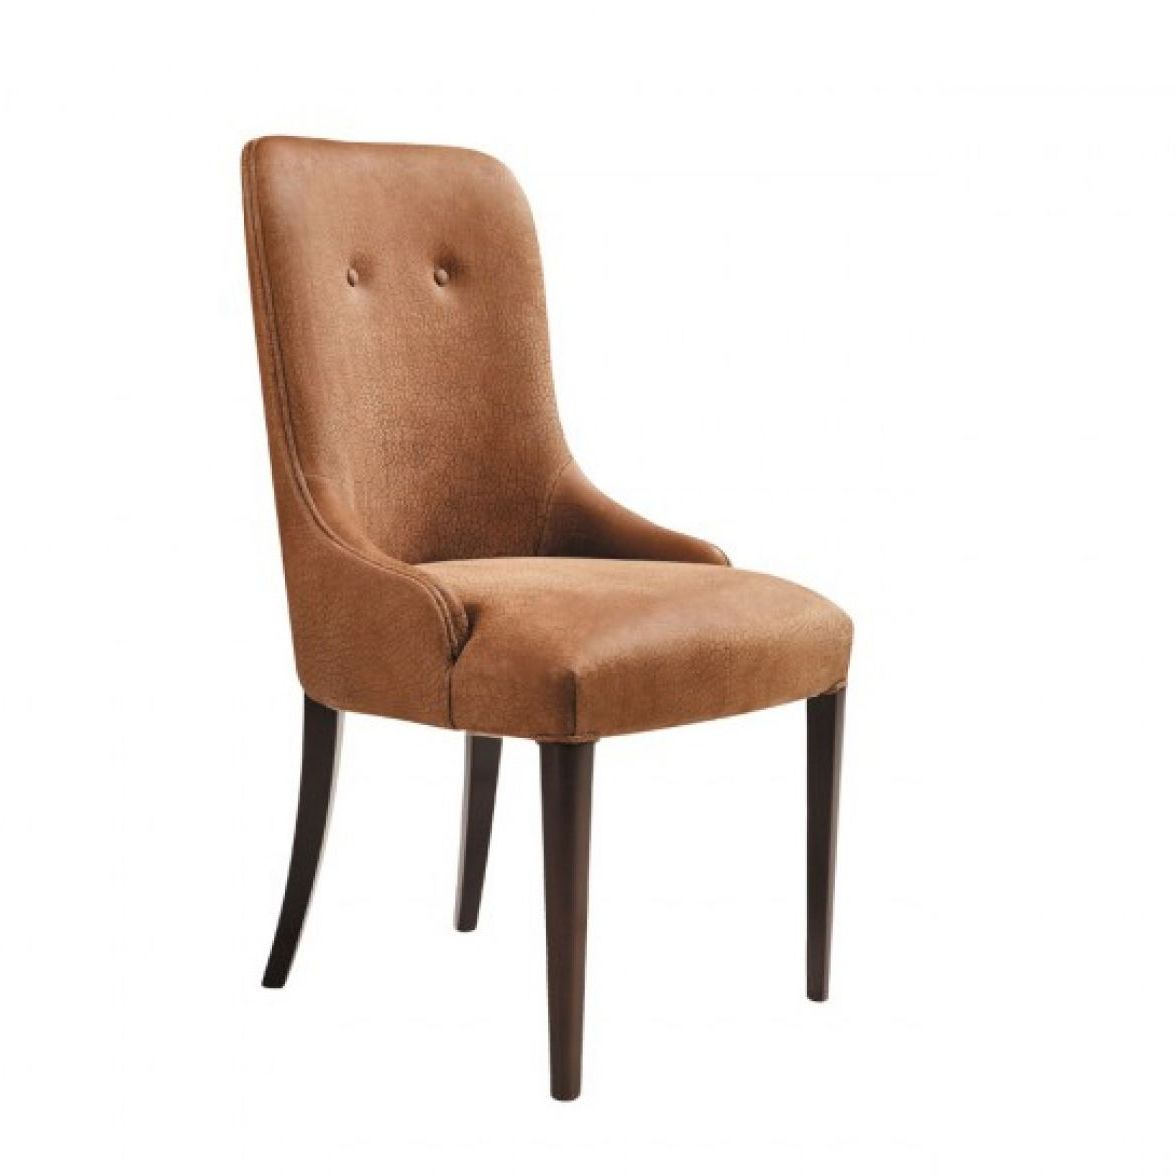 AURA CHAIR